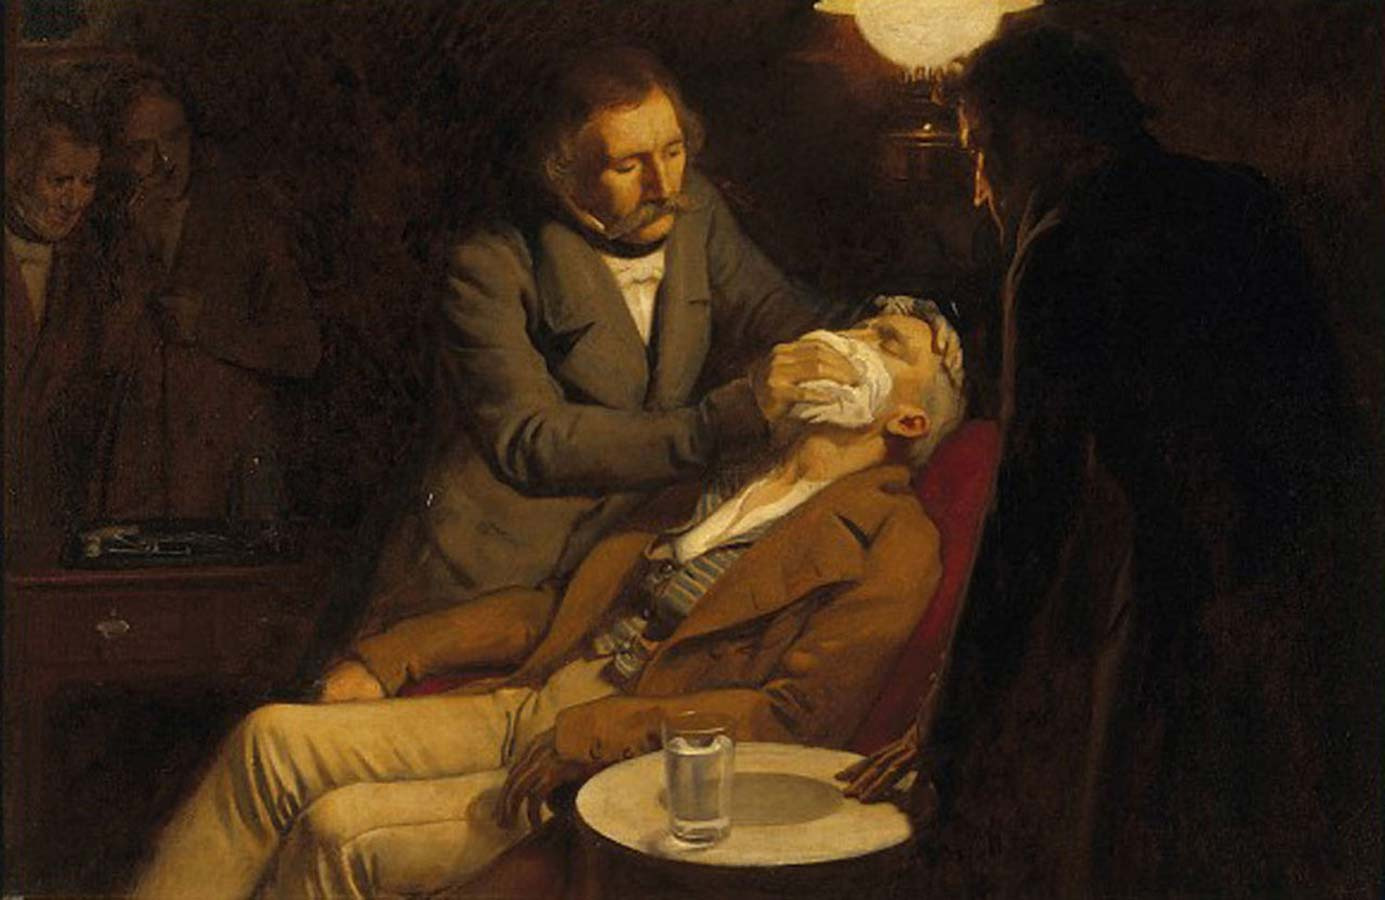 Painting of Dr. William T. G. Morton demonstrating the use of ether-induced anesthesia